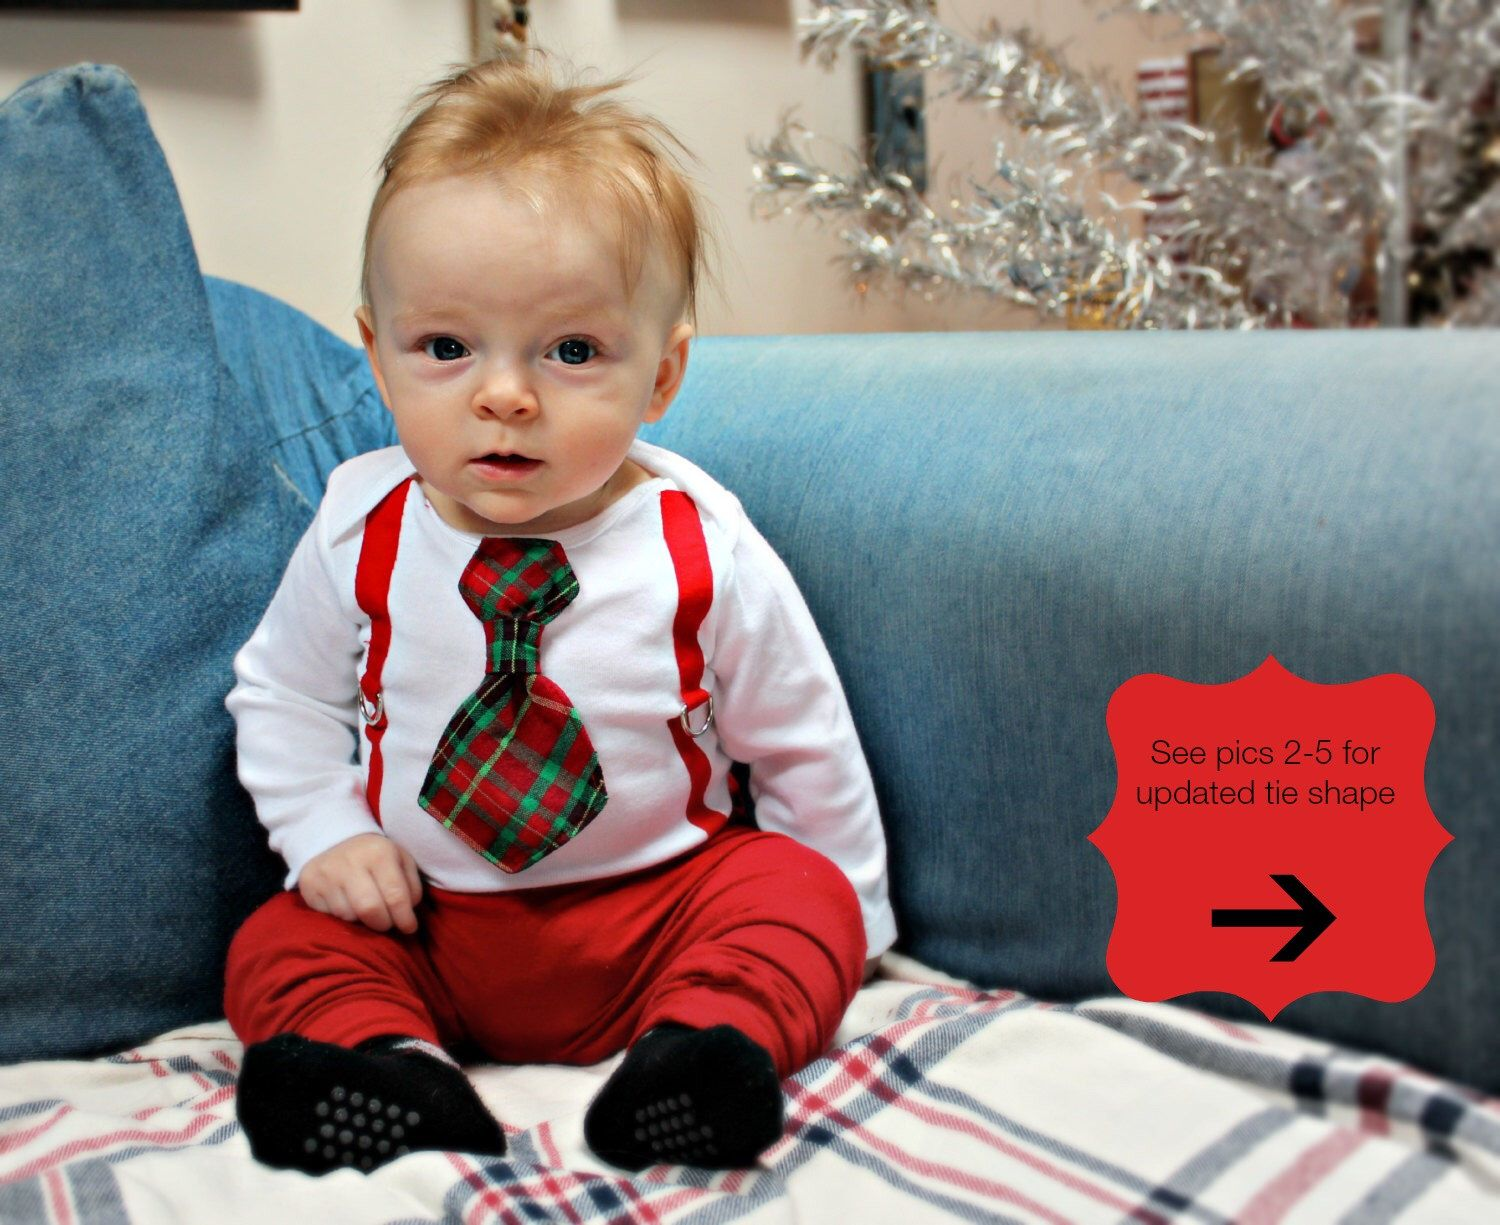 Baby Boy Christmas Outfit for Newborn, Toddler or Infant Christmas